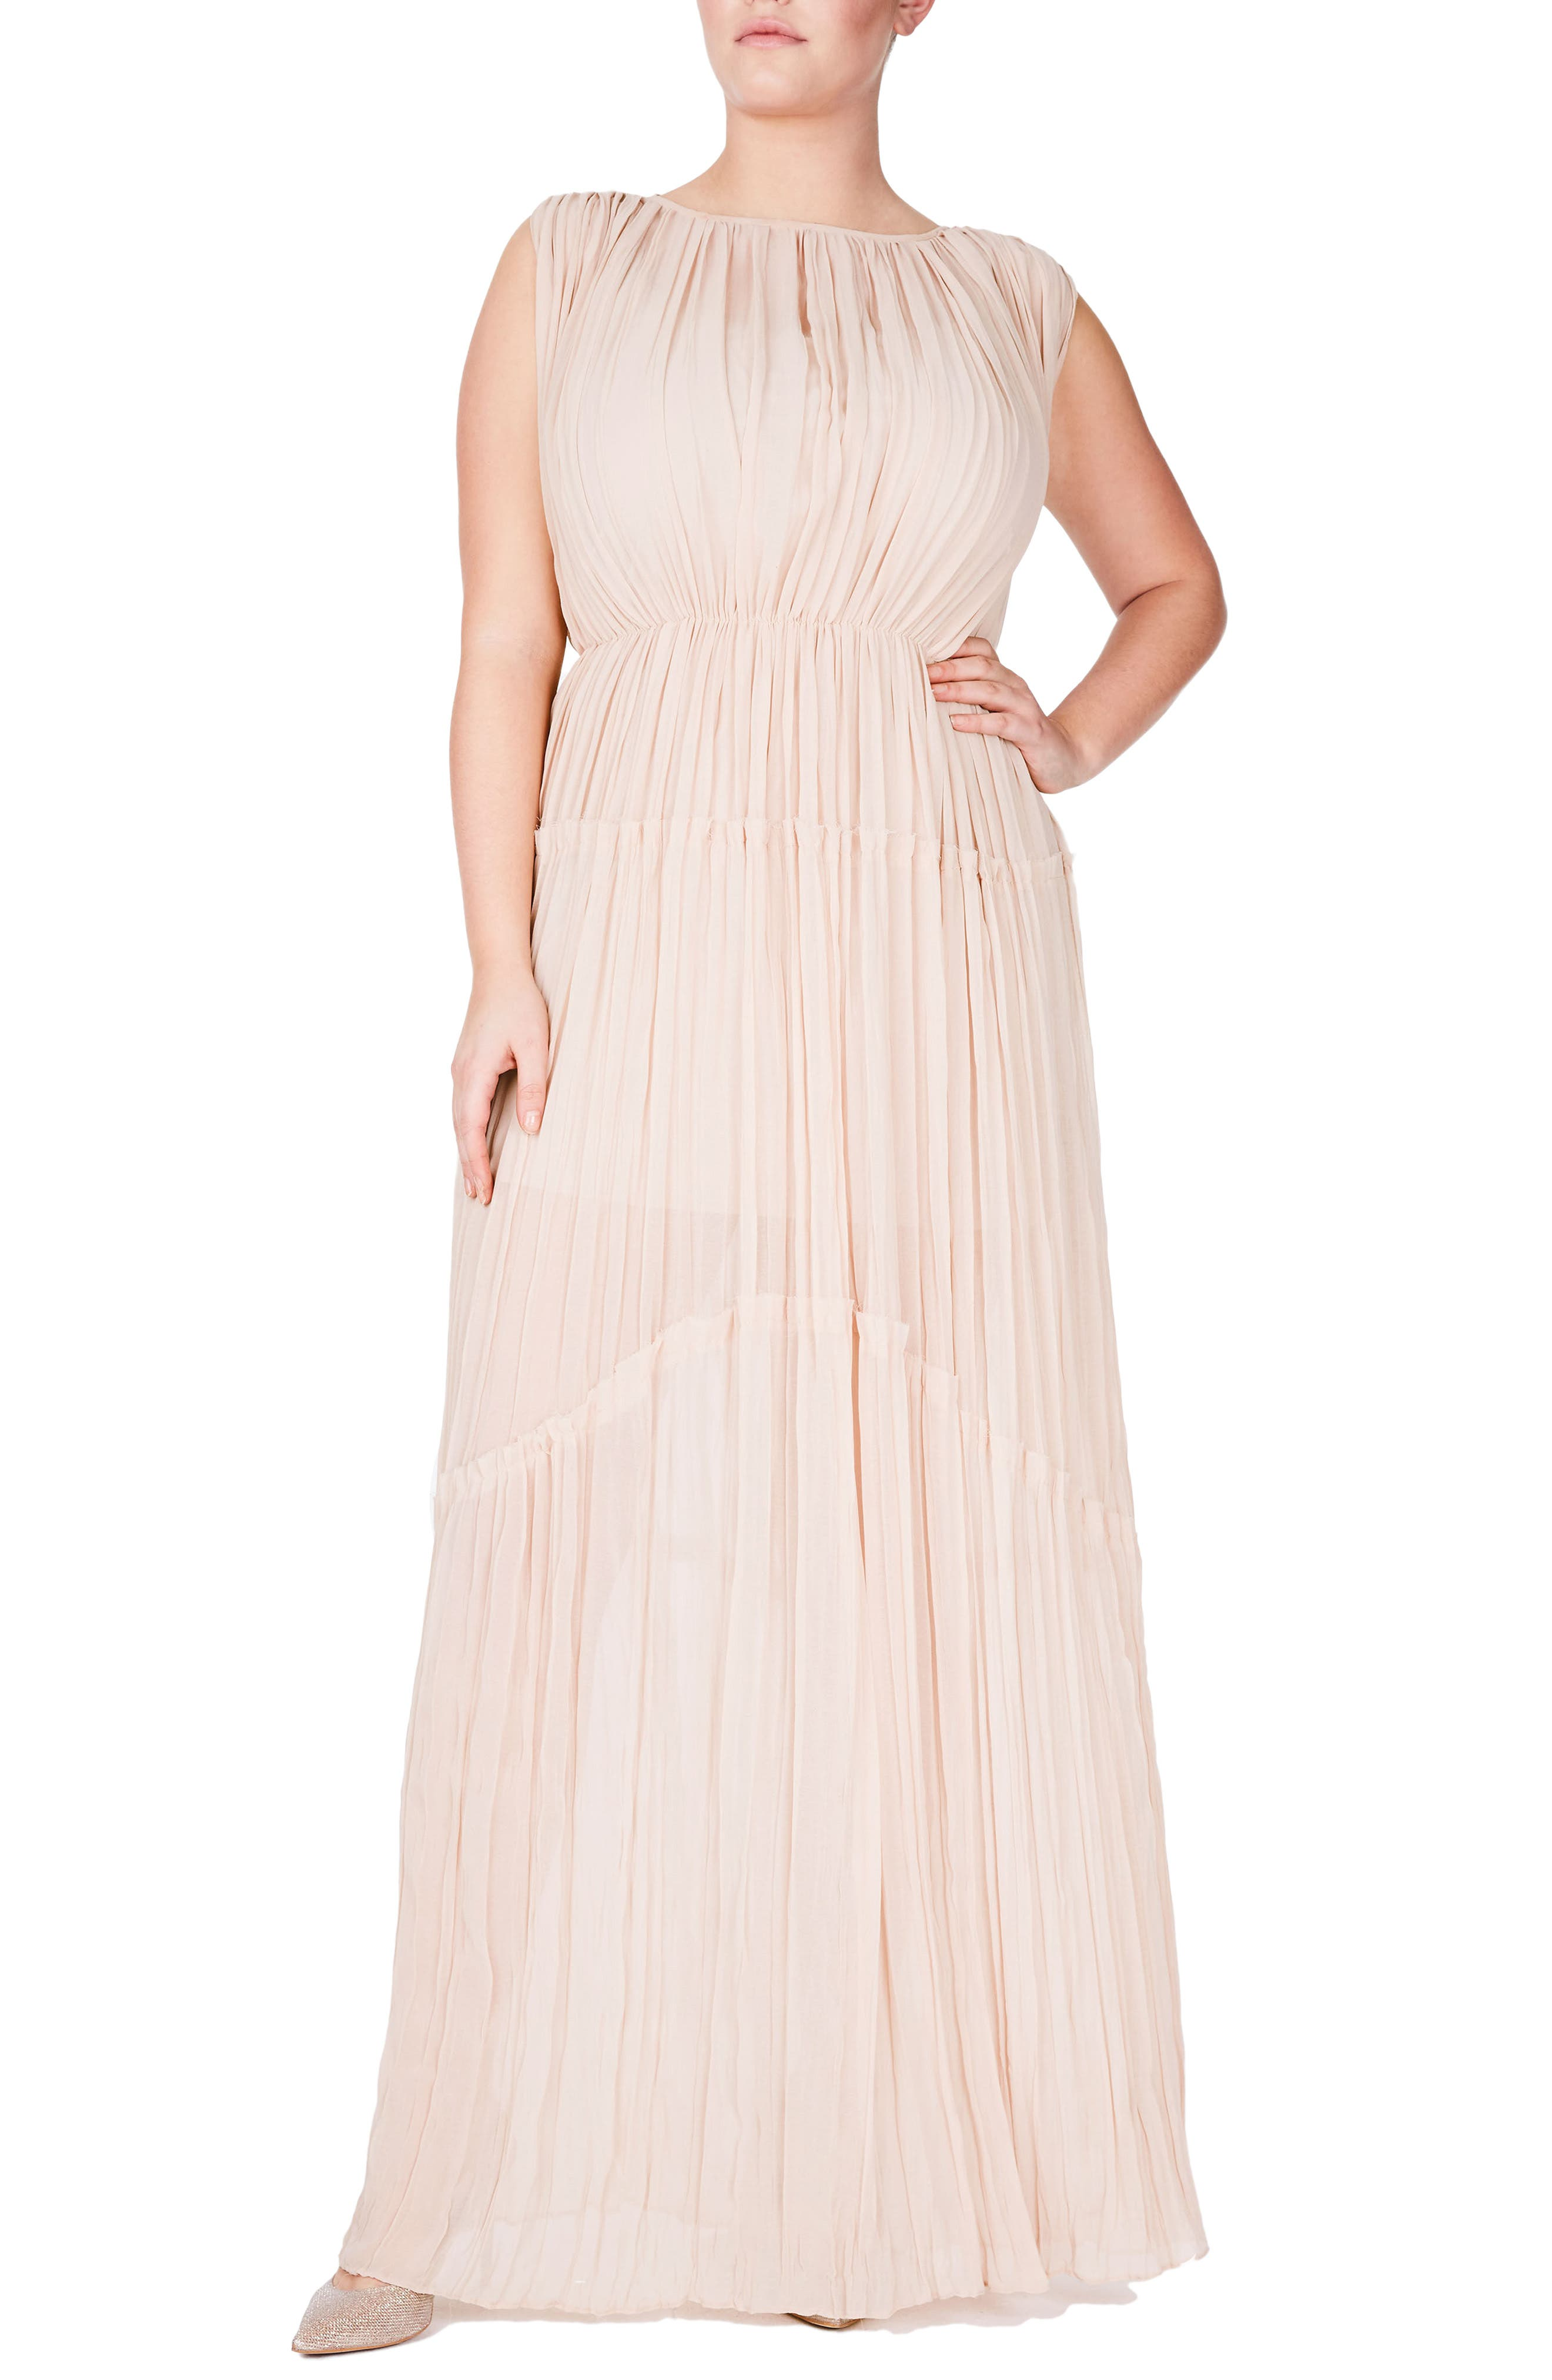 ELVI Pleat Chiffon Tiered Gown (Plus Size)